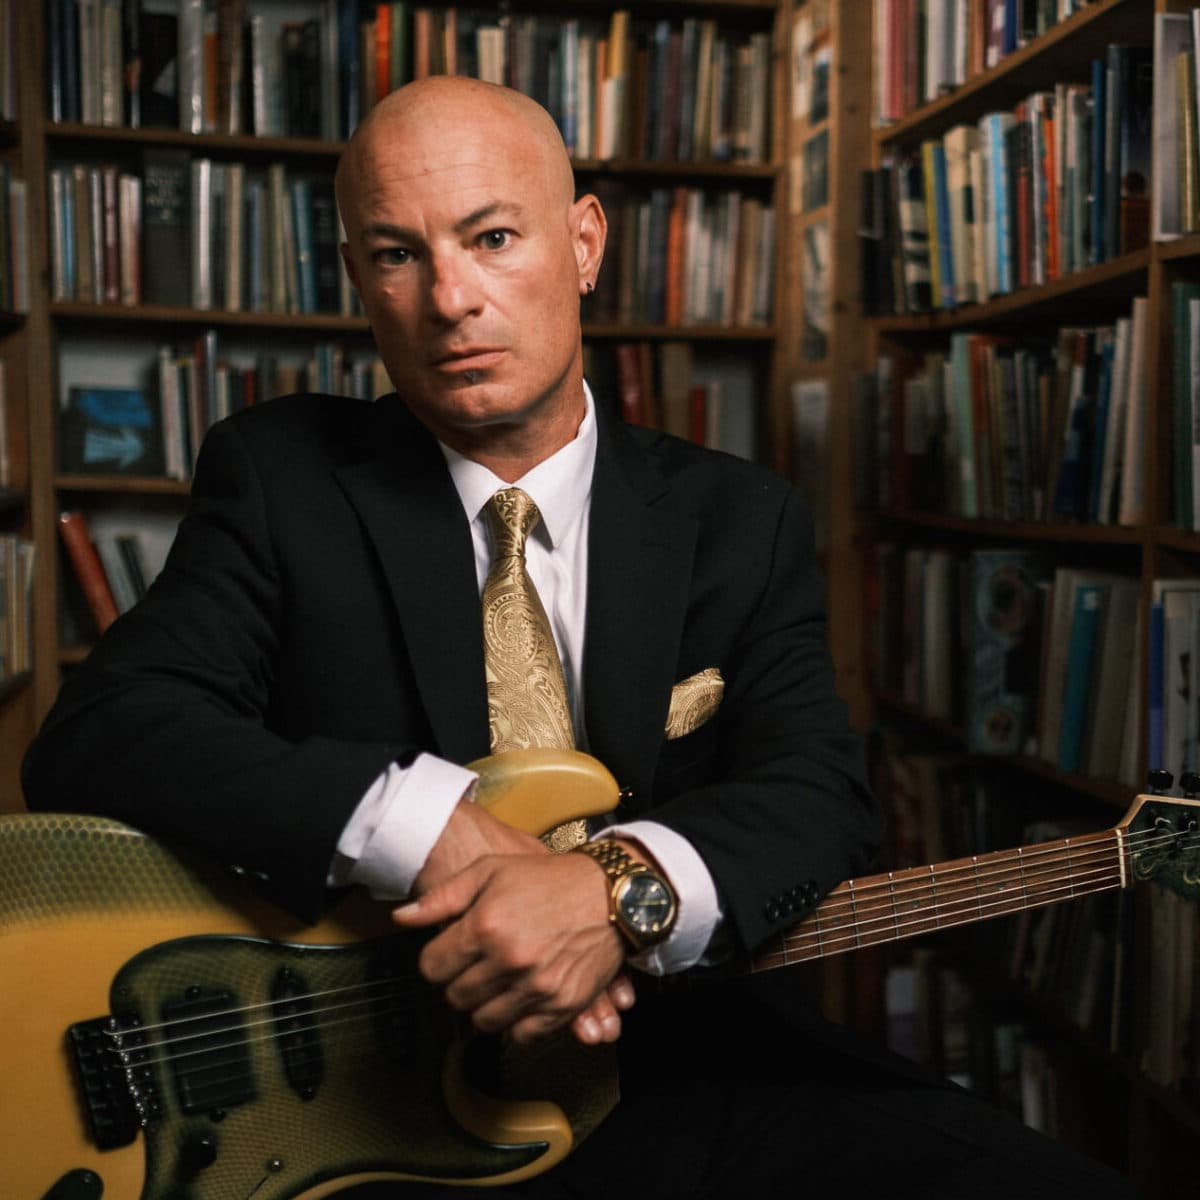 Ryan Rosoff of Little King sitting in library with guitar in suit and tie